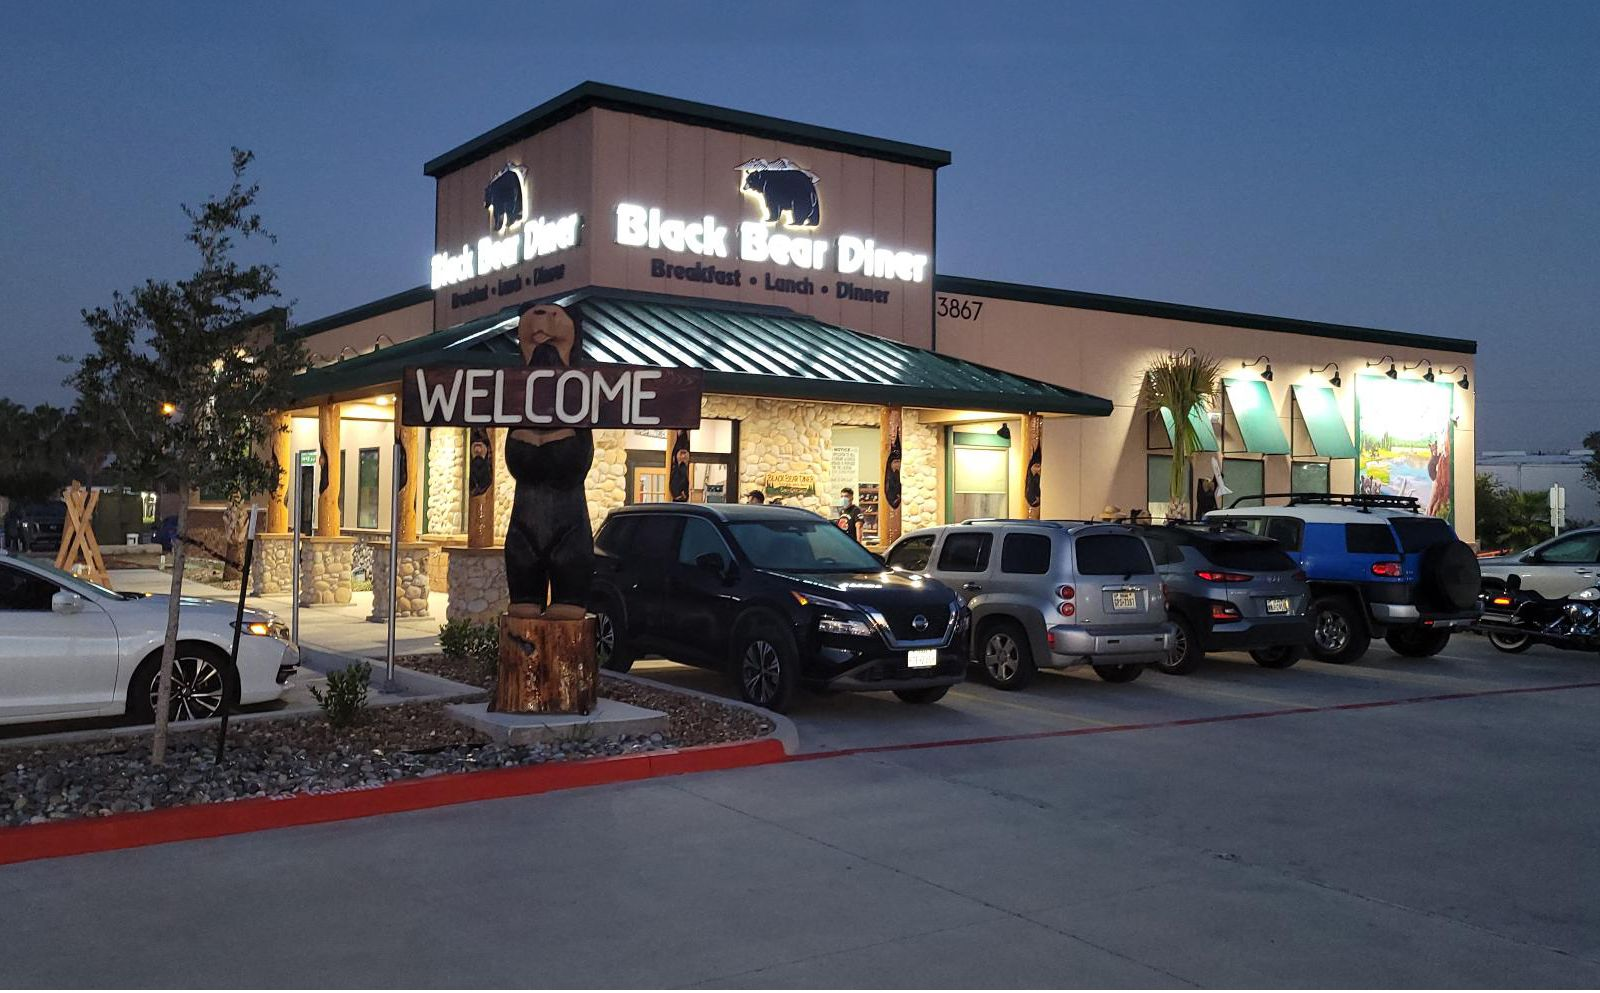 Black Bear Diner Announces Grand Opening of Brownsville, Texas Diner, with Enhanced Layout to Better Accommodate Off-Premise Sales